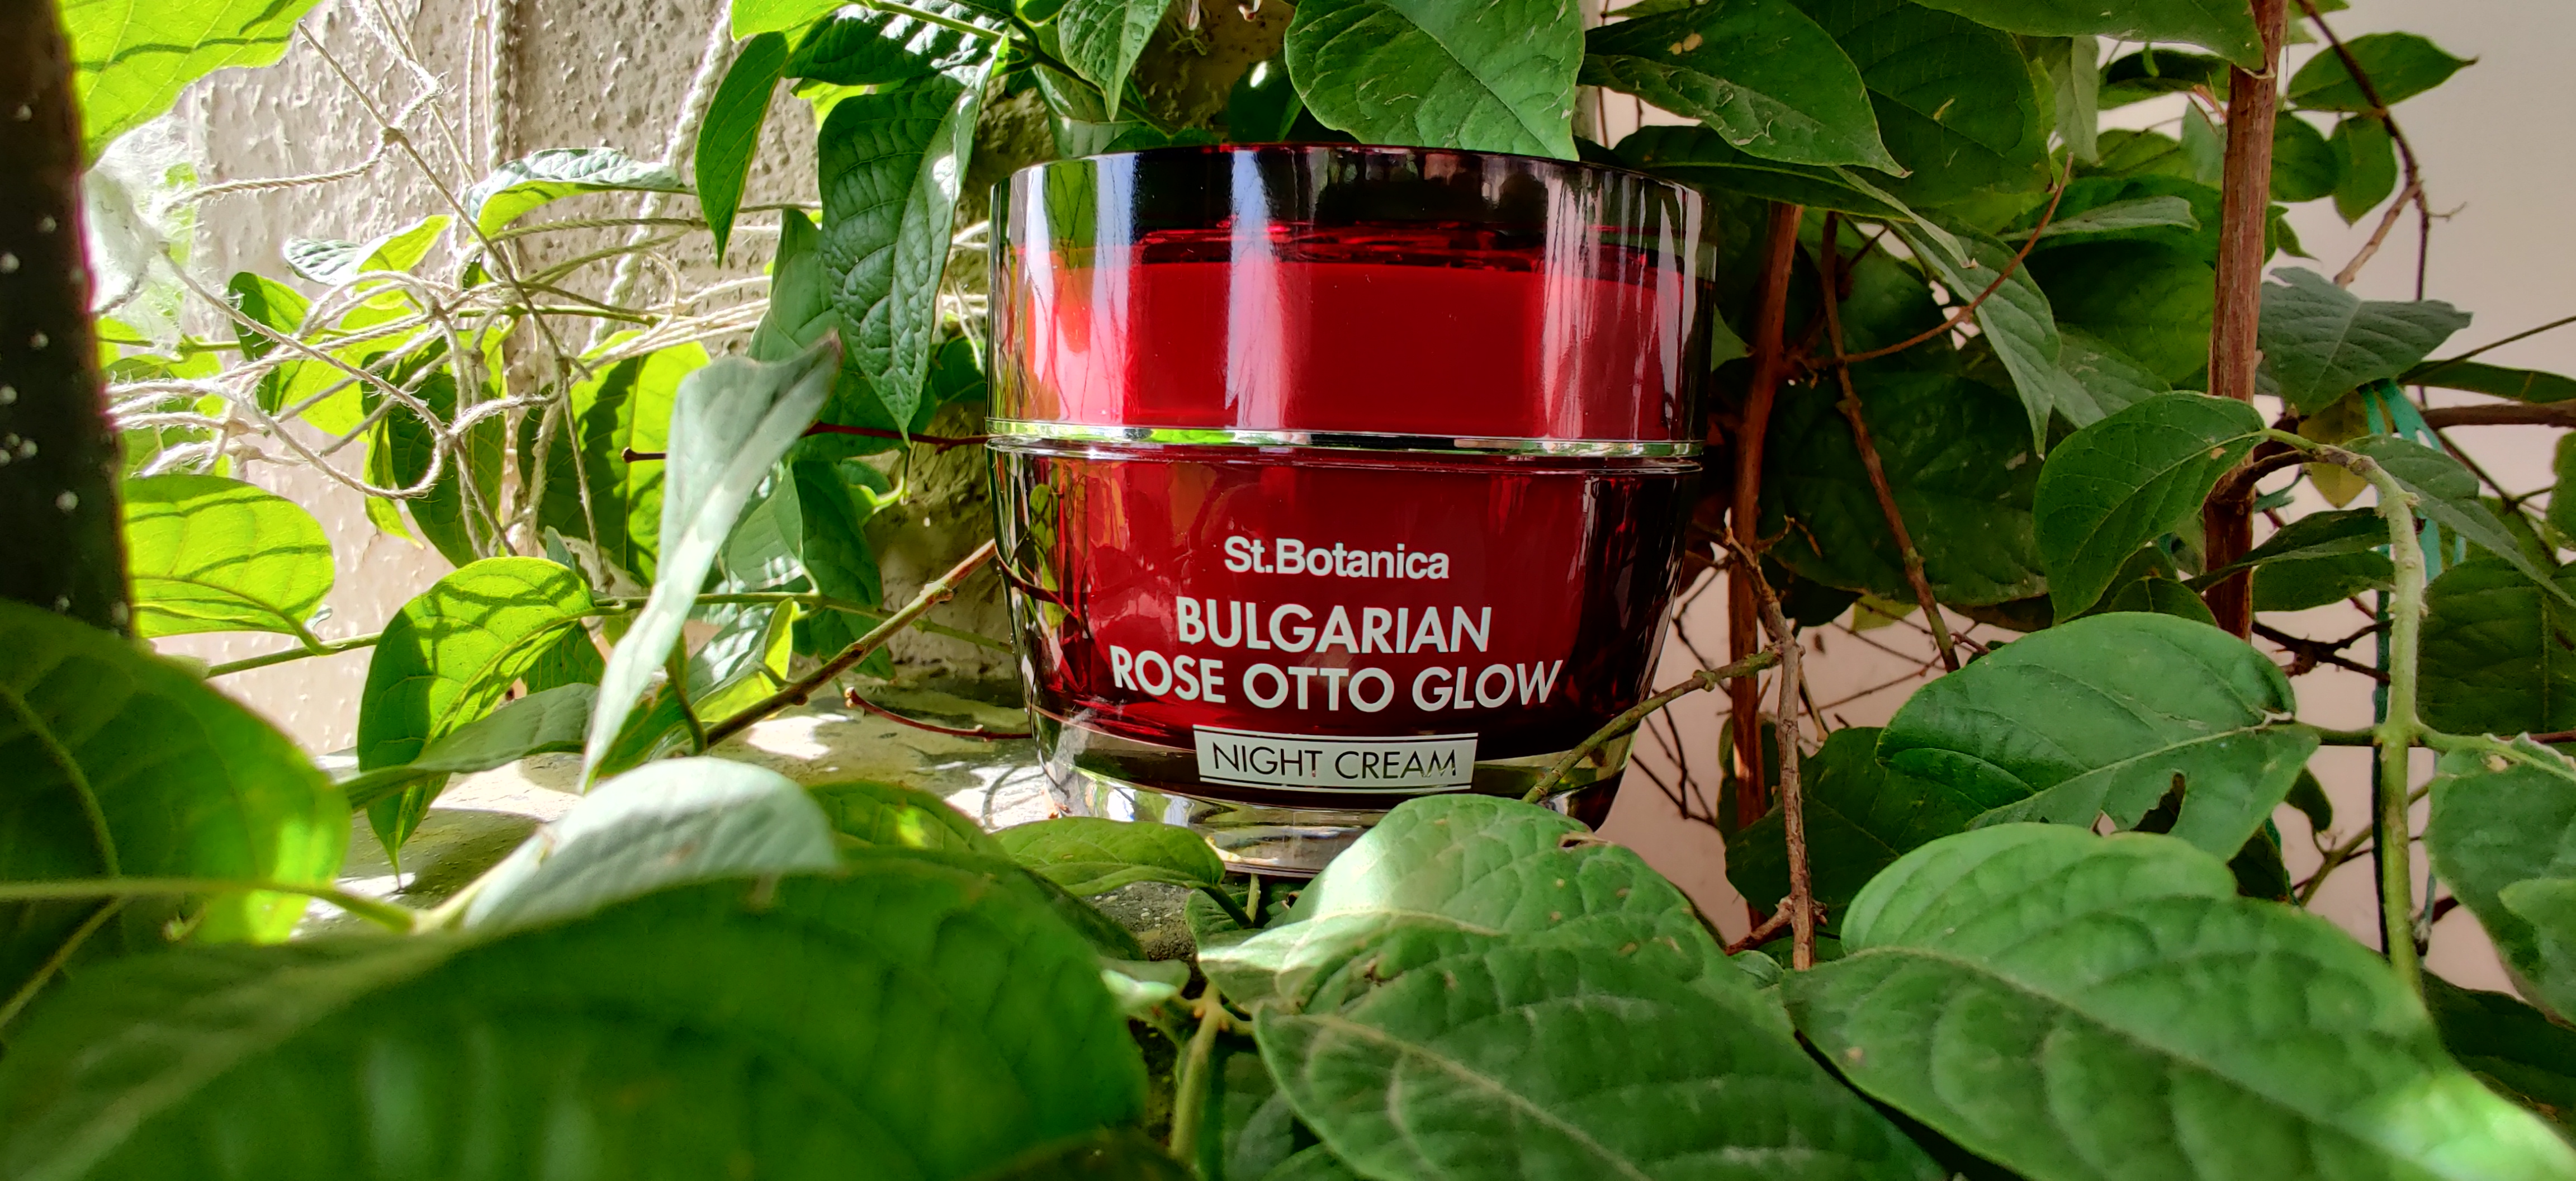 St.Botanica Bulgarian Rose Otto Glow Night Cream-Night food for skin-By meghanka_parihar